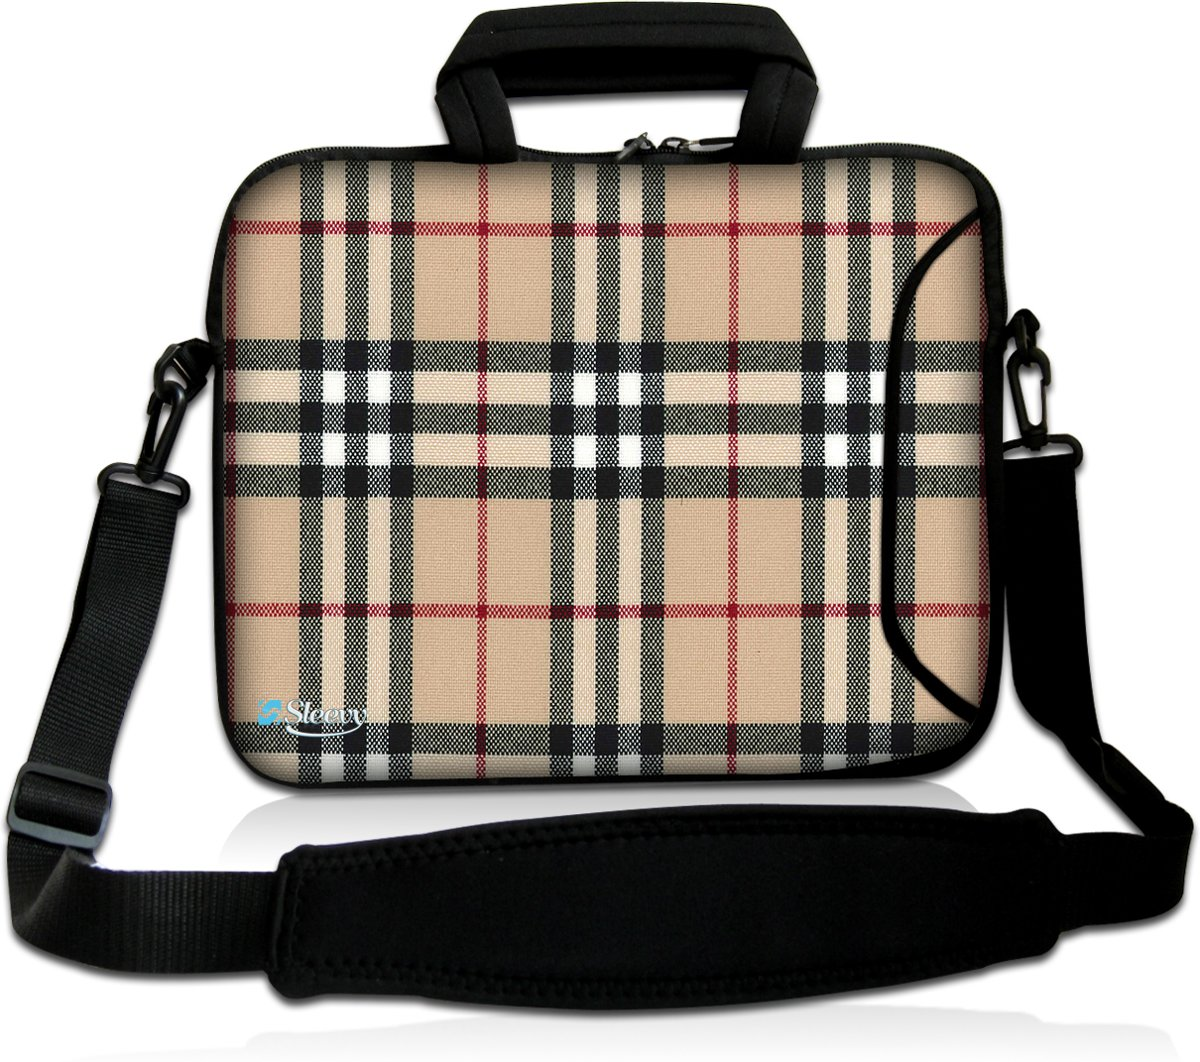 Laptoptas 15,6 inch ruiten chic - Sleevy